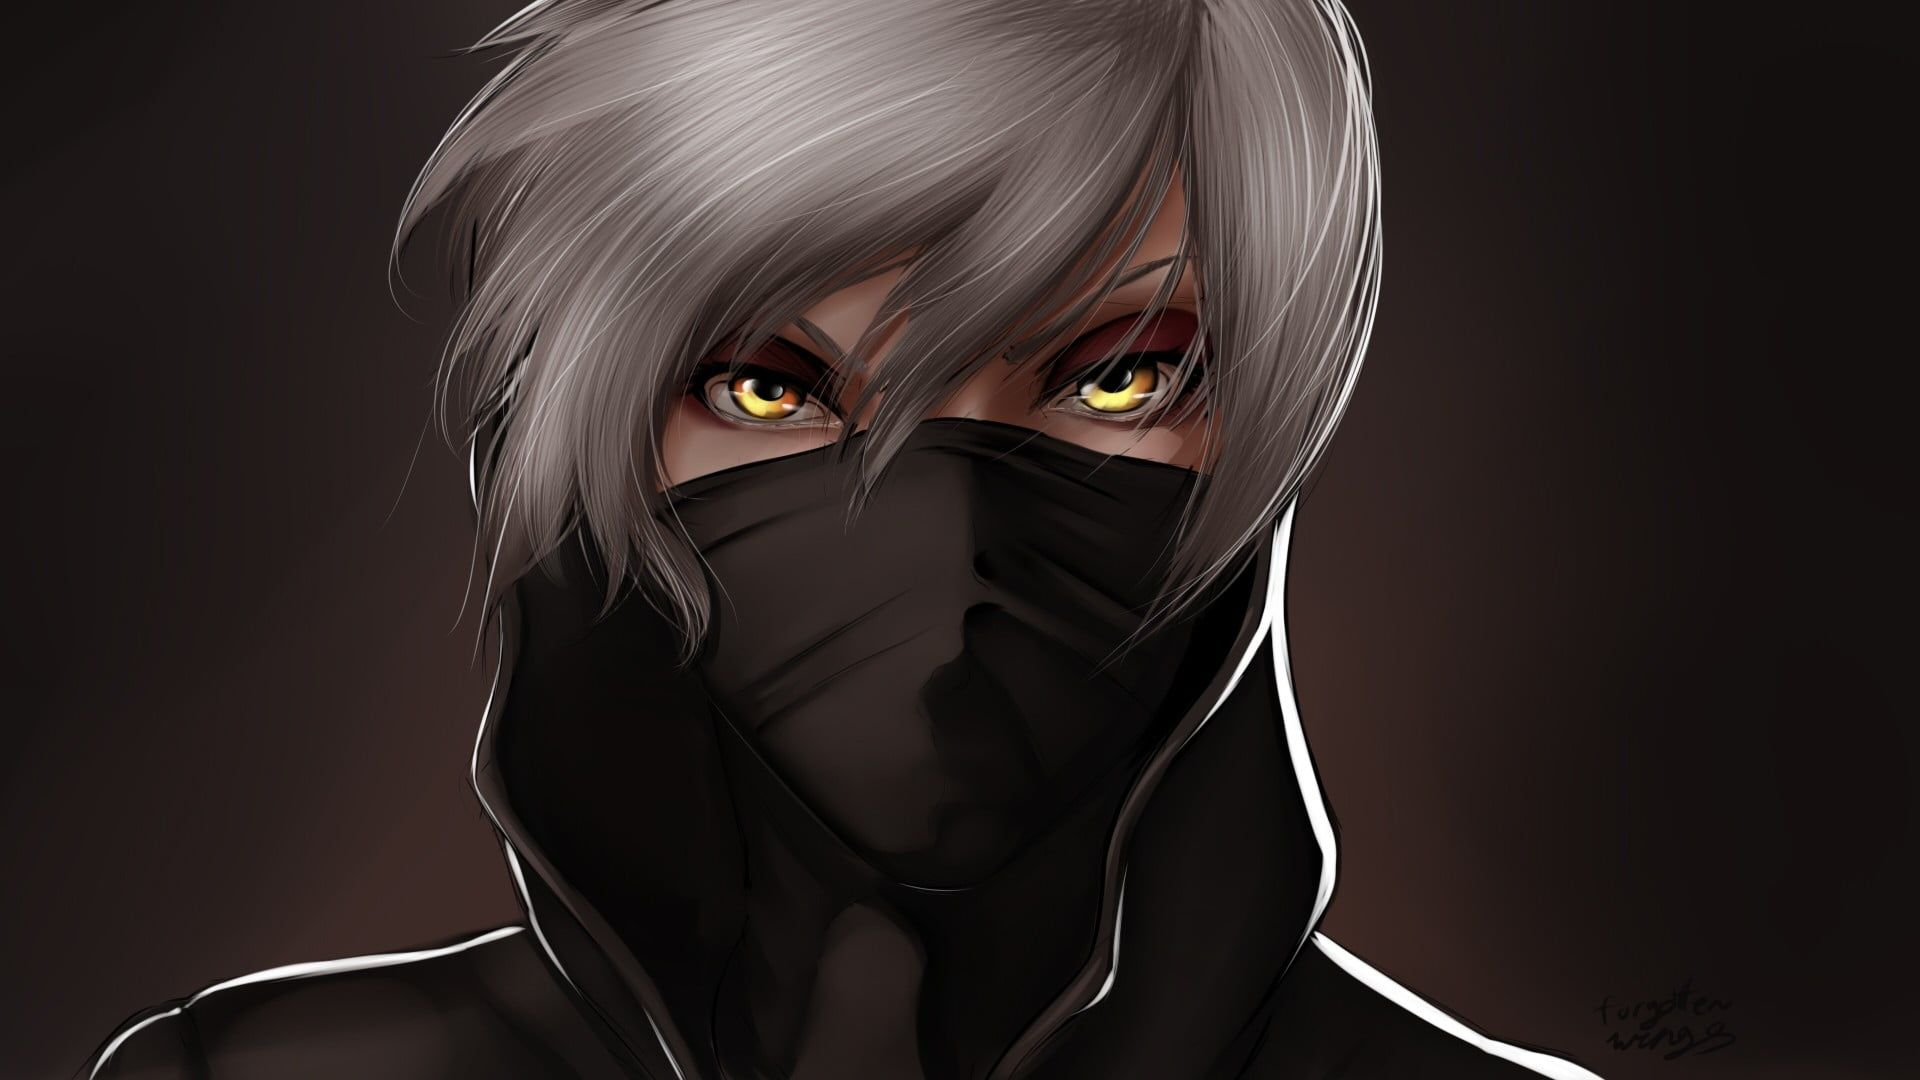 Anime Character Wearing Black Face Mask Hd Wallpaper Wallpaper Flare Anime Wallpaper Hd Anime Wallpapers Anime Hd